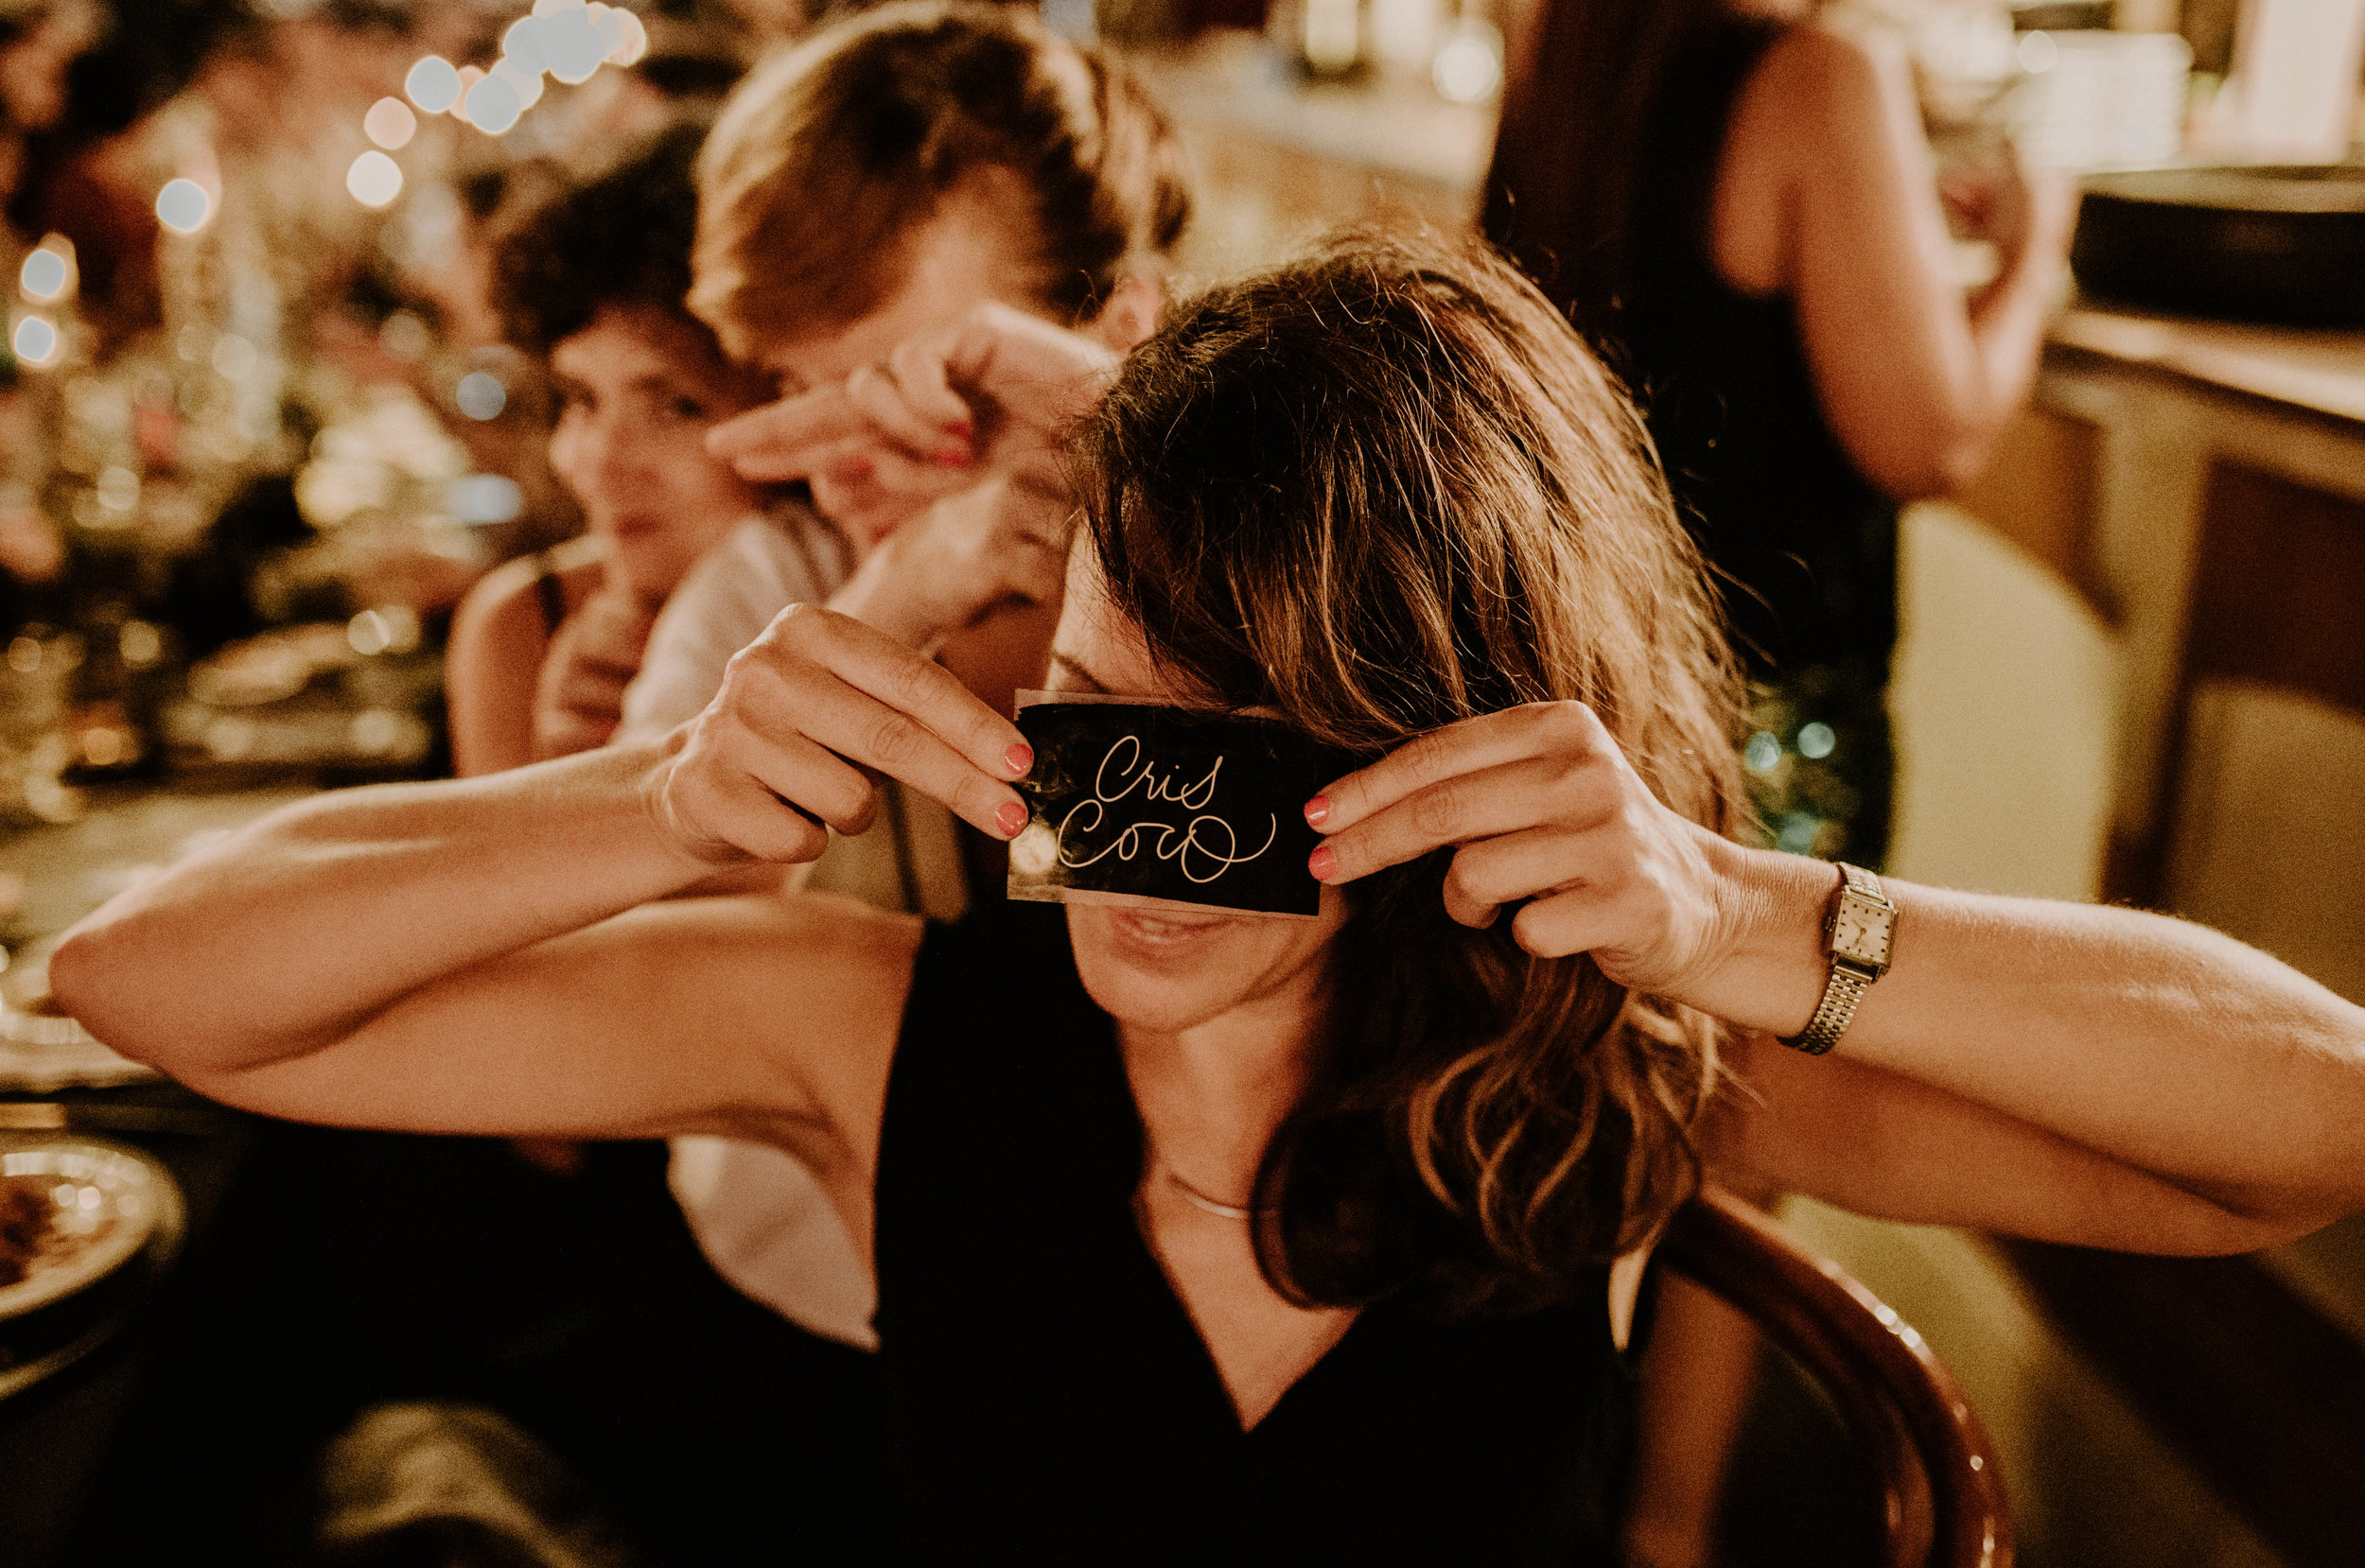 thenortherngirlphotography_bodasindustriales_bodasdiferentes_weddingphotographer_spanishphotographer_spanisgweddingphotographer_happyendings_mercantic_elsiglomercantic_antichrist_love_neon_weddingtattoo_CYNTHIAMANOLO-755.jpg